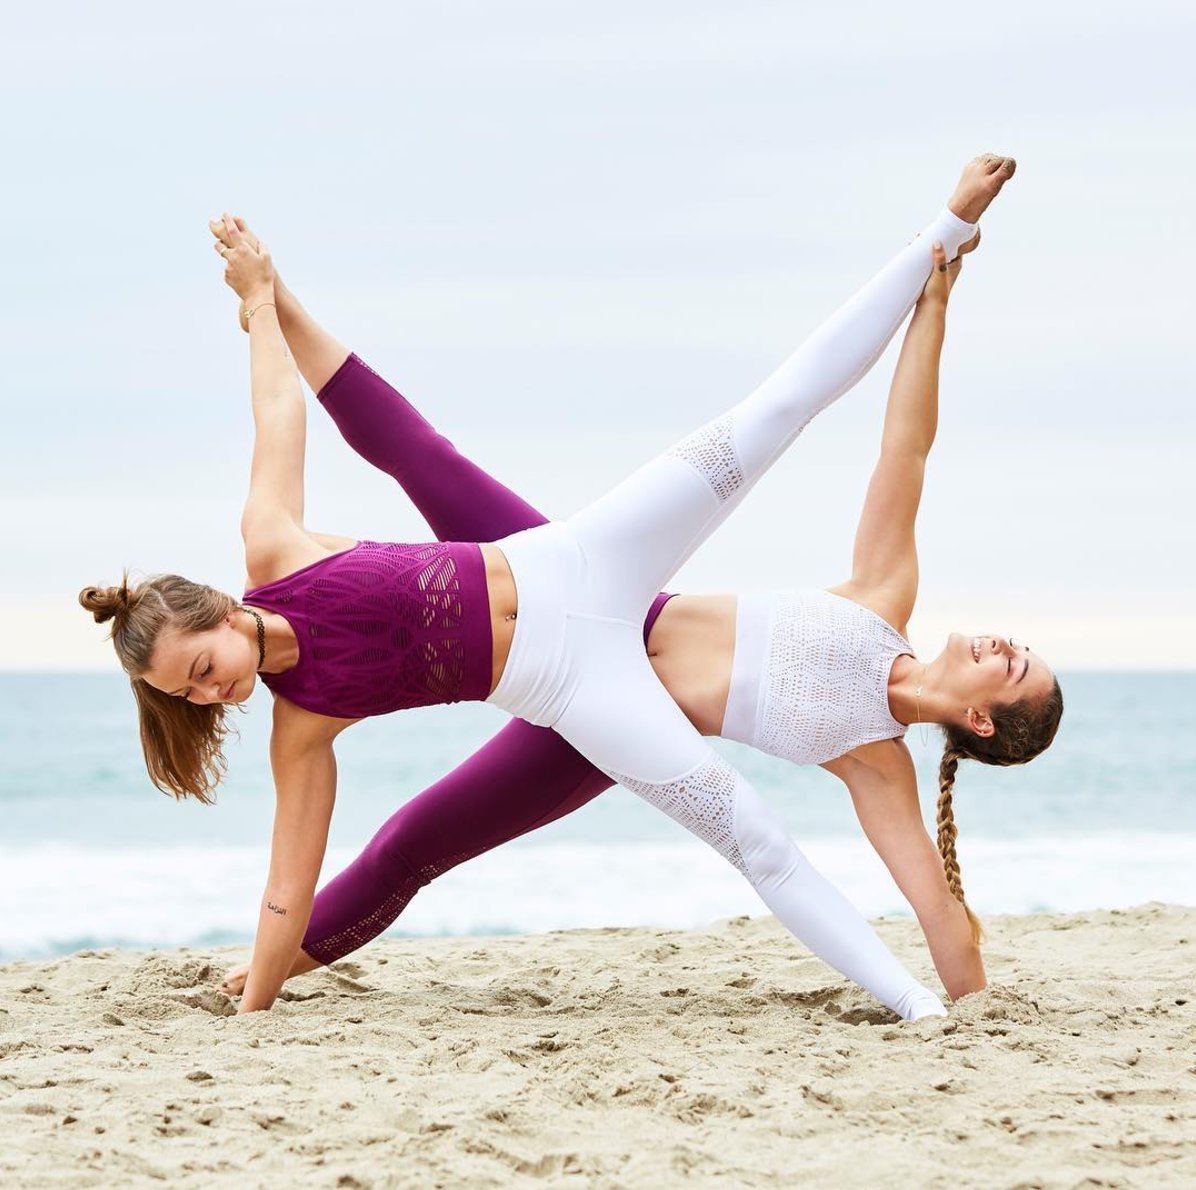 Yoga Yogainspiration Partner Yoga Poses Yoga Challenge Poses Two Person Yoga Poses